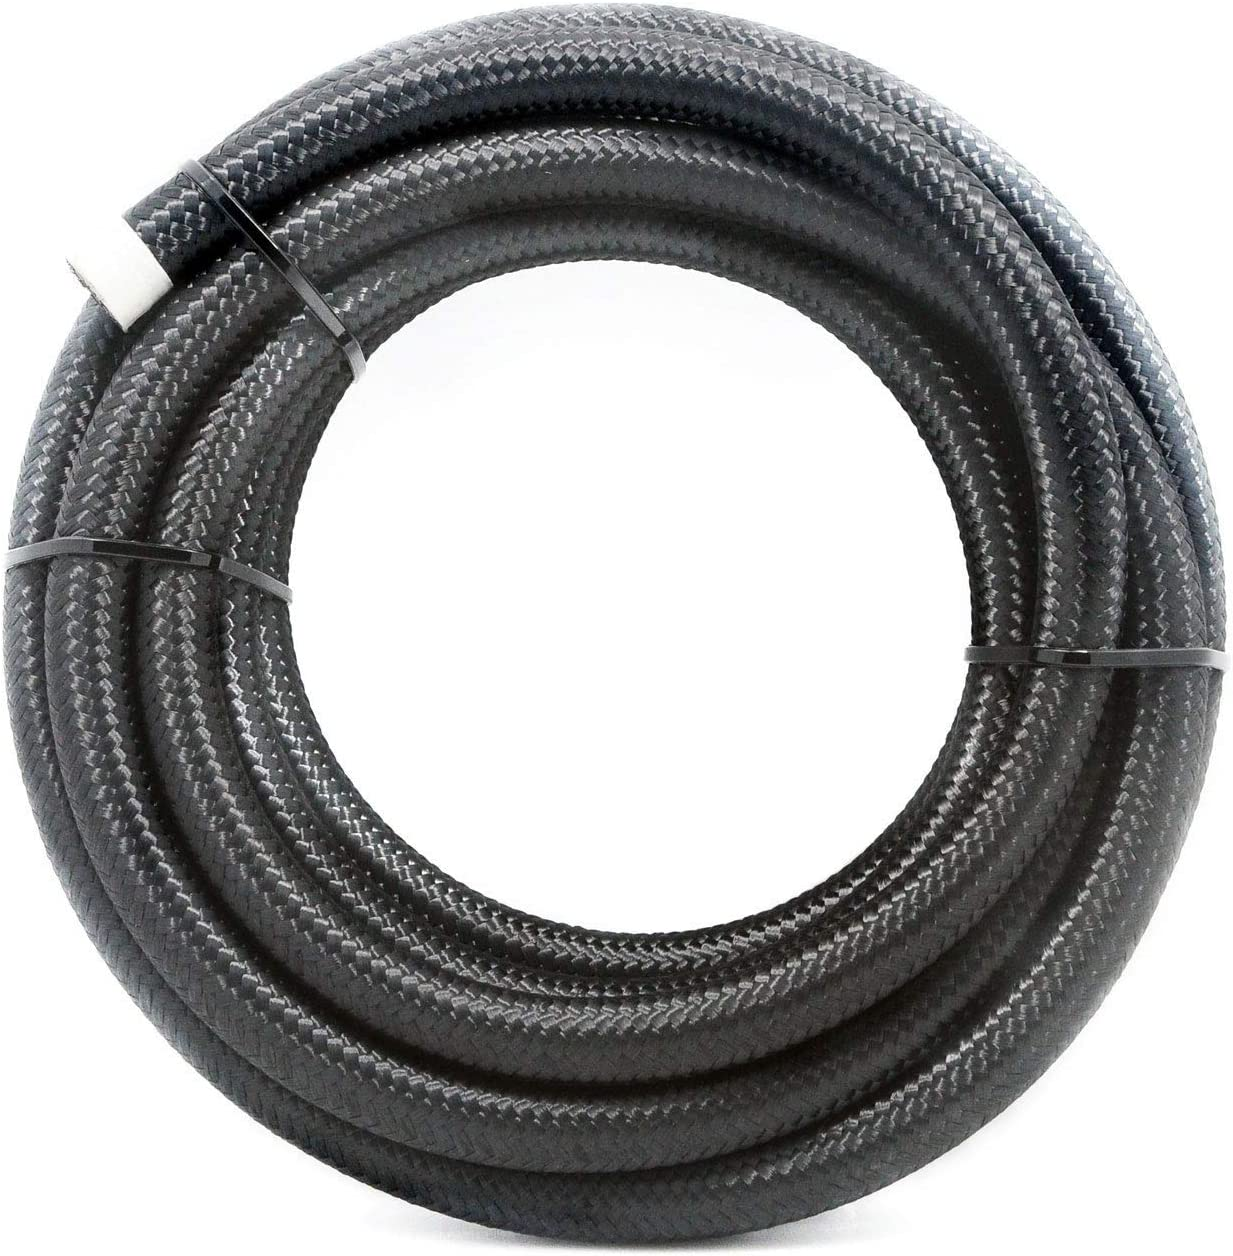 "2RZ 6AN 16Ft(5M) Universal Braided Oil Fuel Line Hose Stainless Steel Nylon for 3/8"" Tube Size"